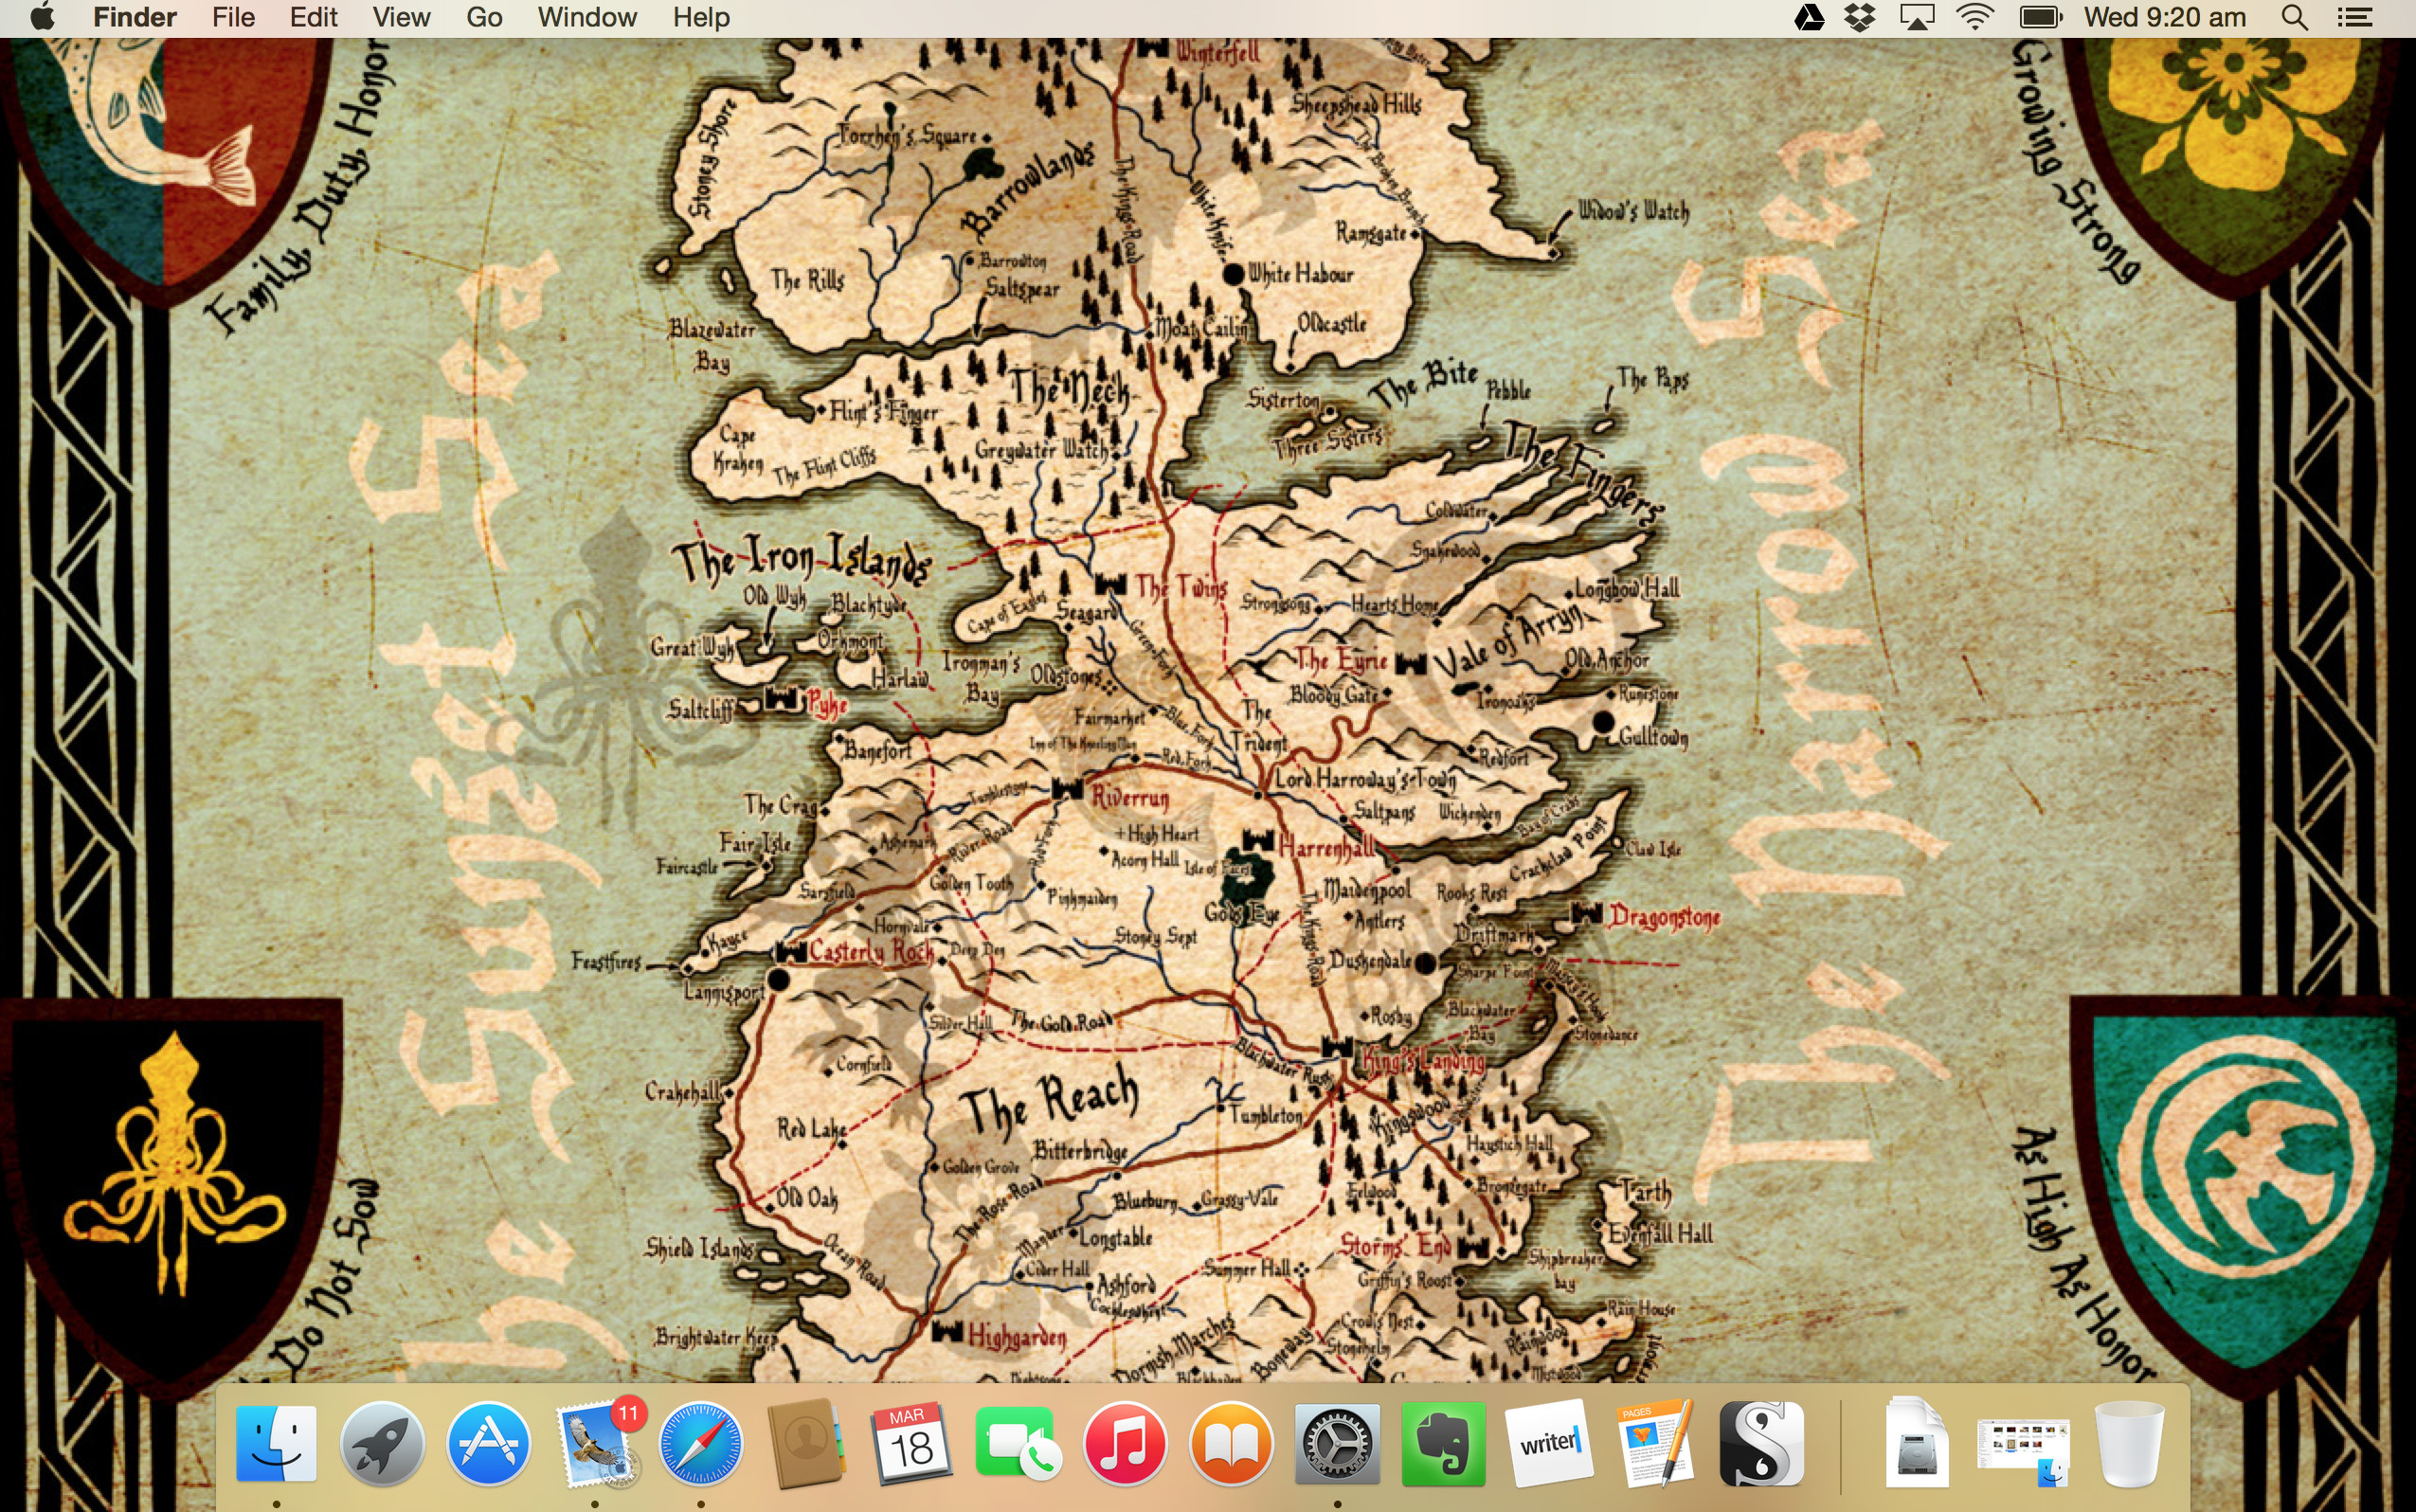 #Wallpaper Wednesday: The Seven Kingdoms of Westeros | Woelf Dietrich